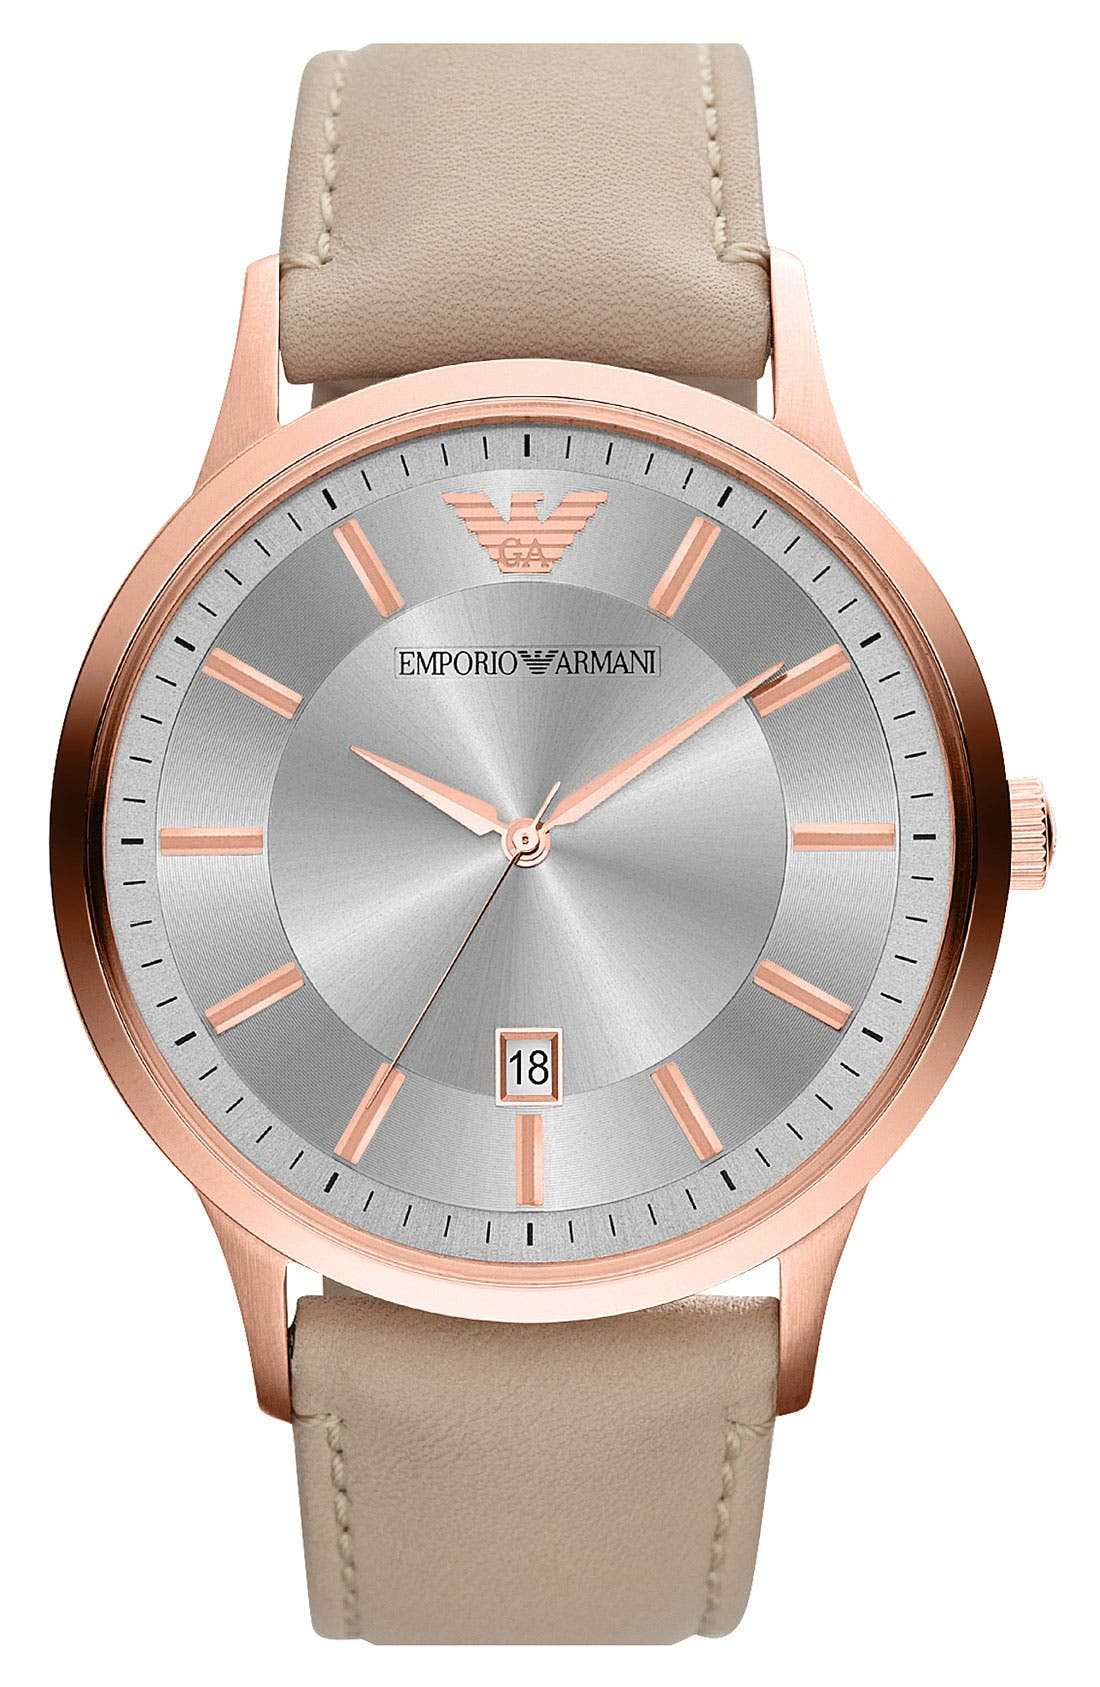 Main Image - Emporio Armani Round Leather Strap Watch, 43mm